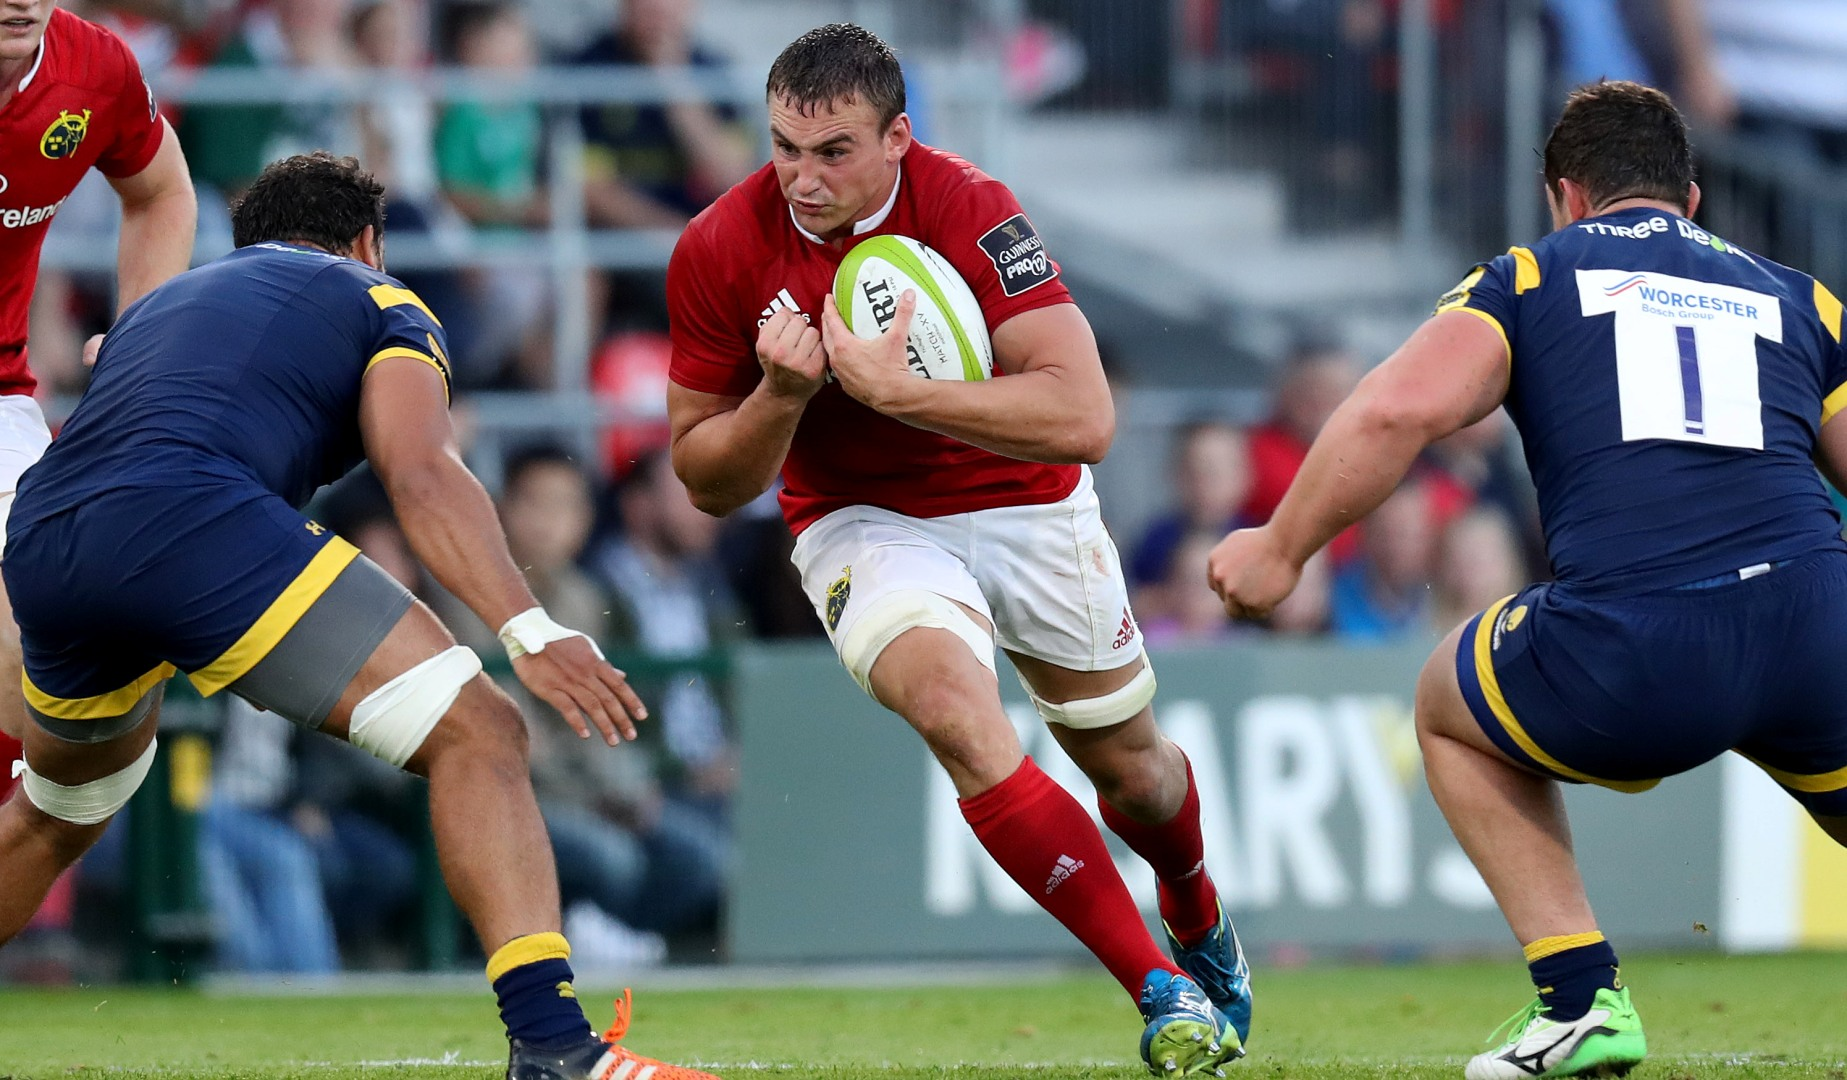 LionsWatch: Guinness PRO12 stars out to impress